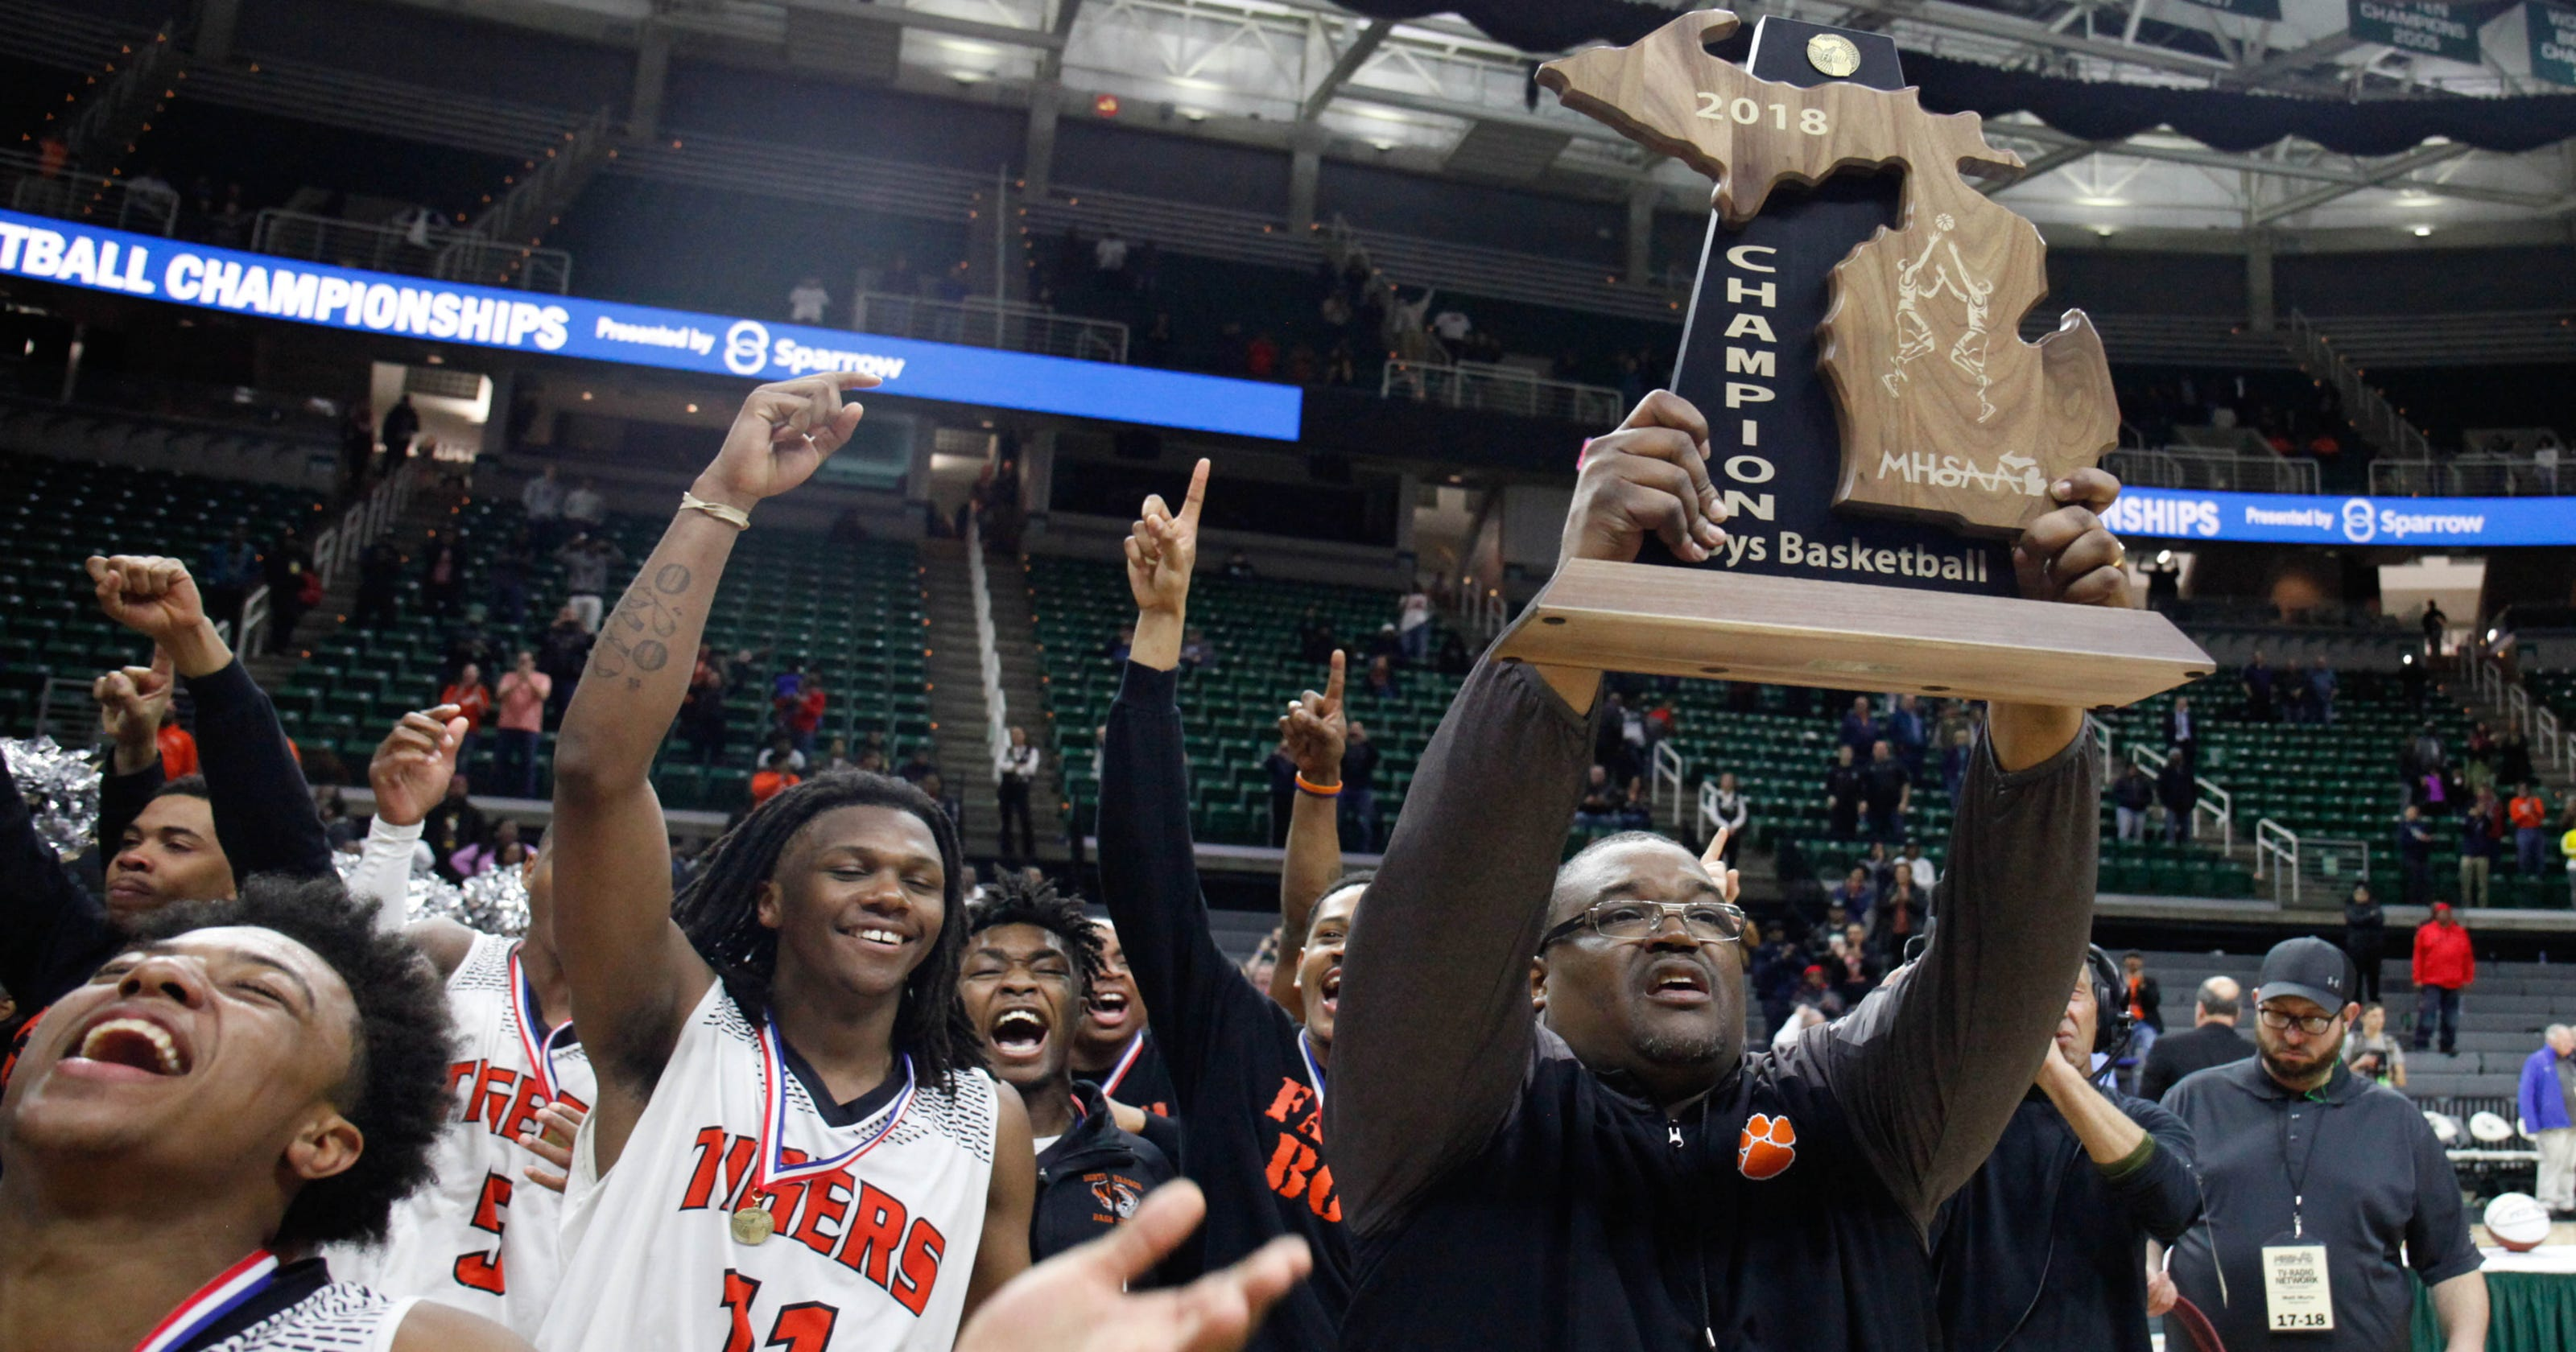 Michigan boys basketball: Ranking top 20 high school teams